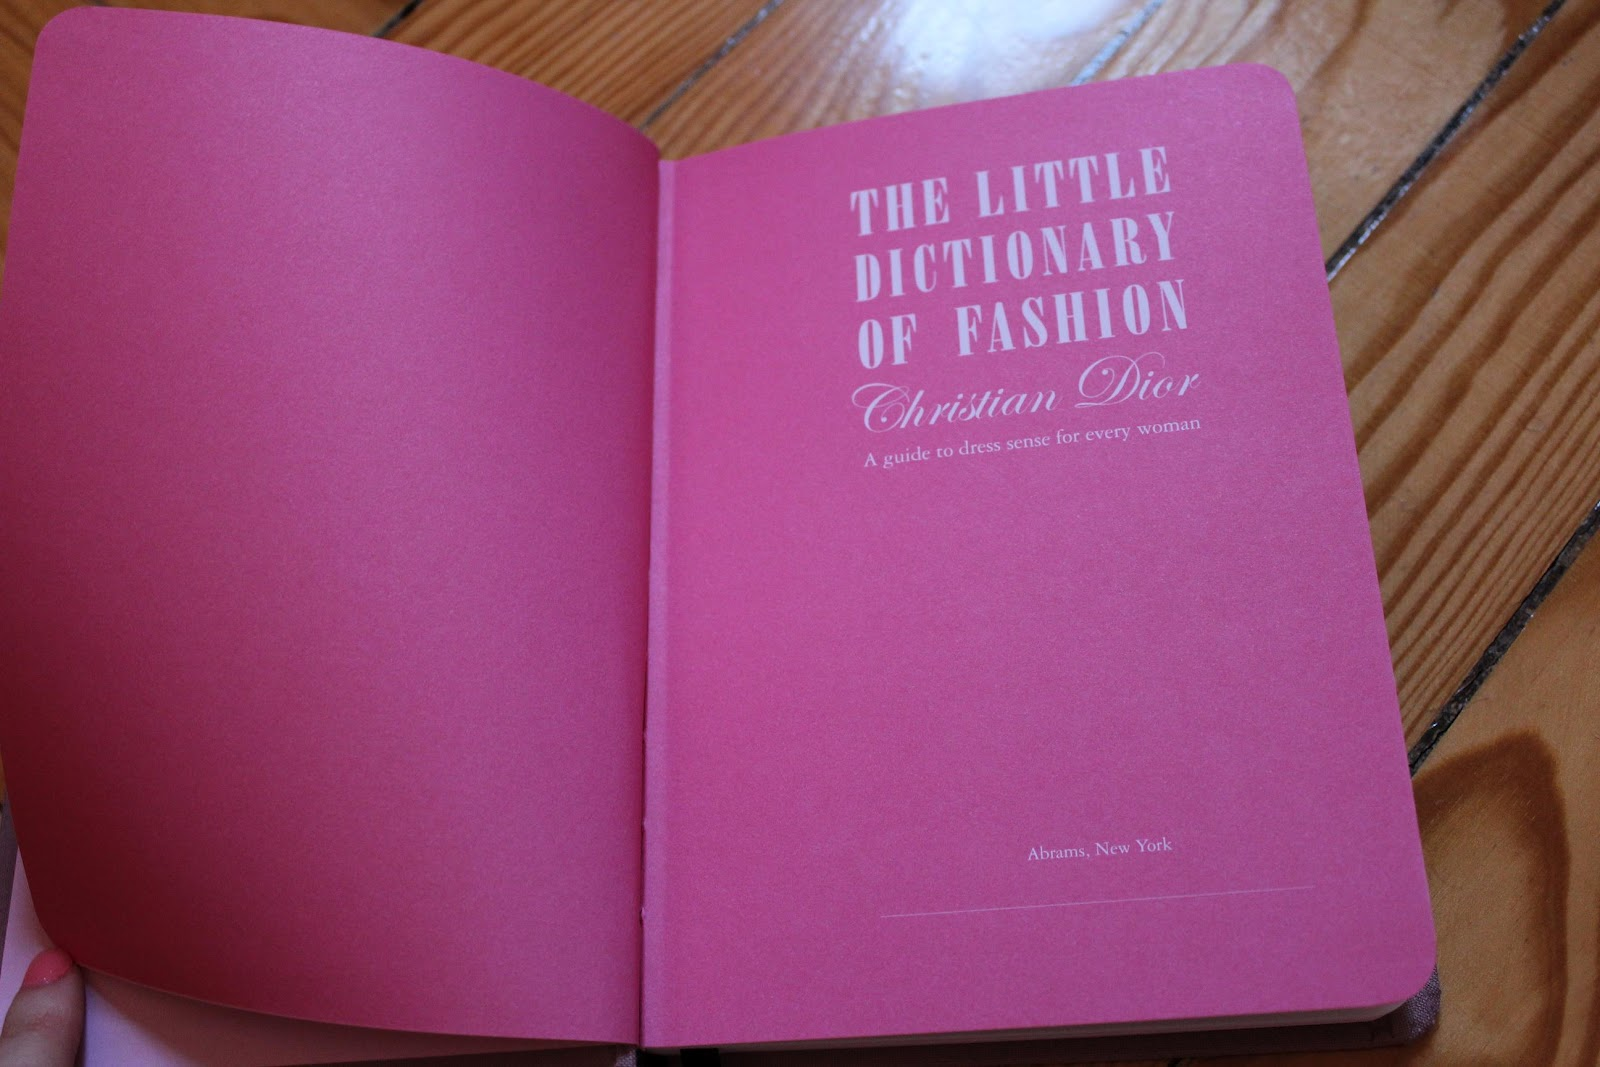 The little dictionary of fashion by christian dior pdf